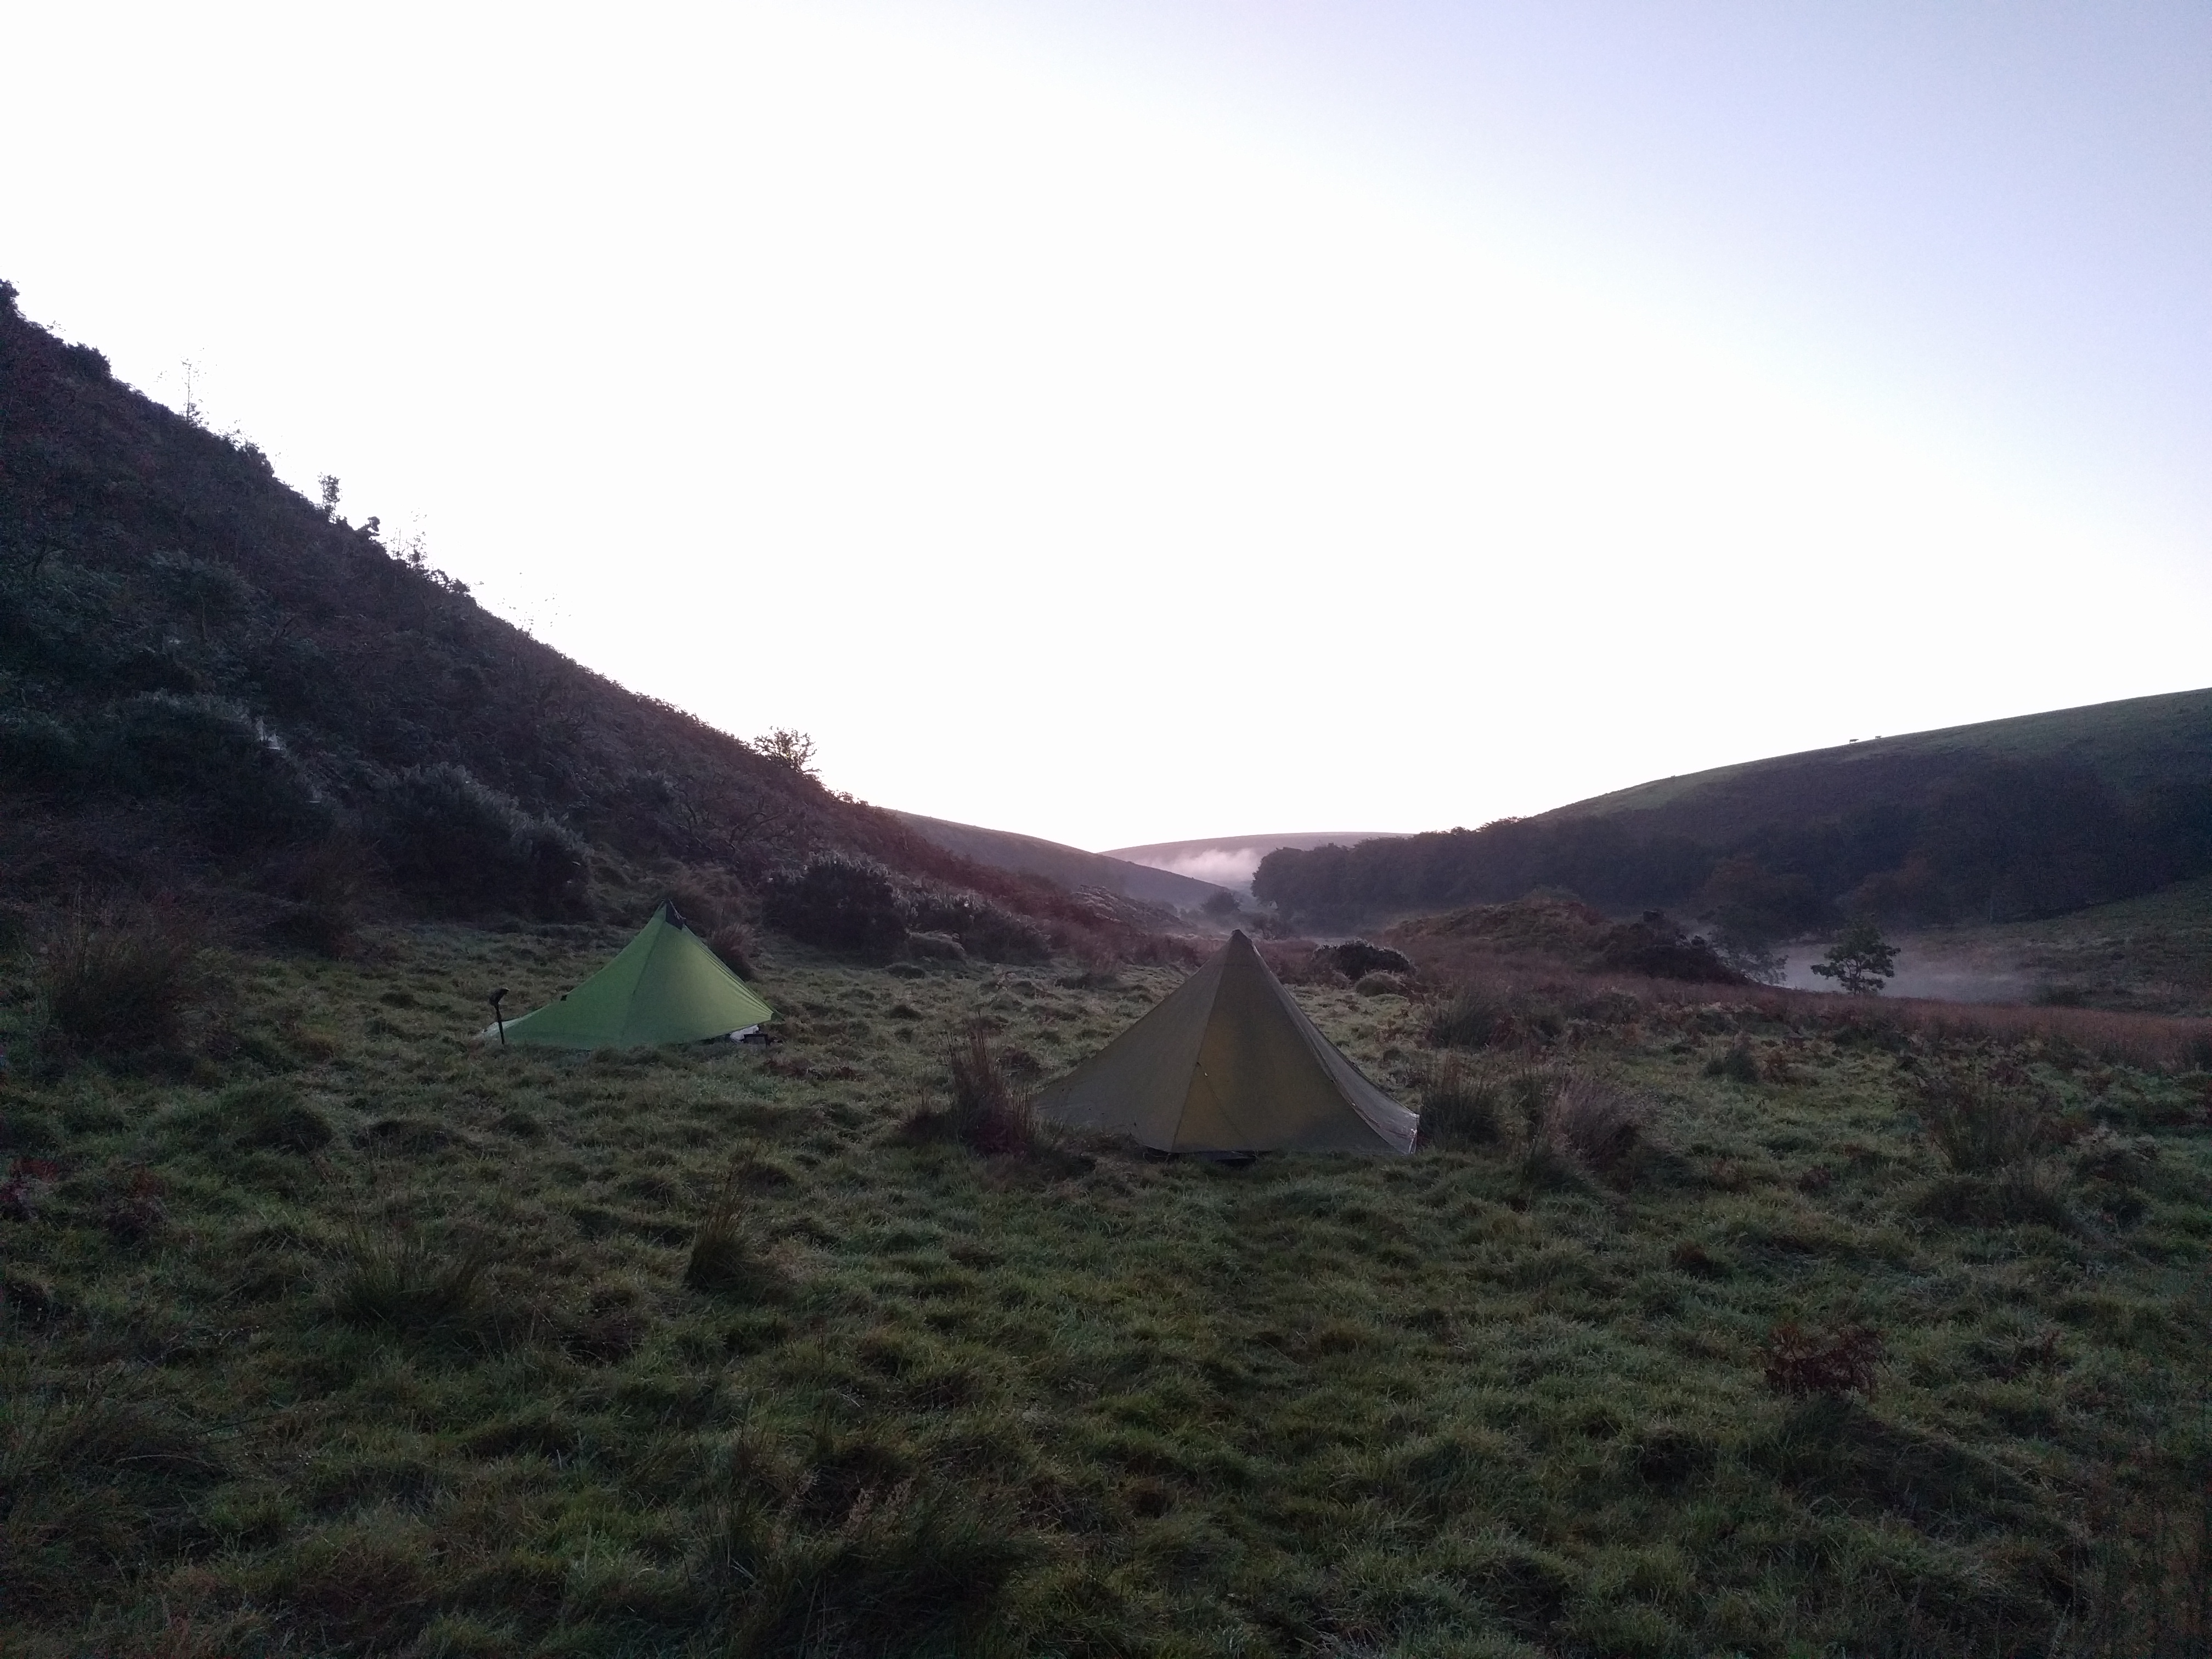 Morning at Cow Castle #sh #twomoorsway #DevonC2C